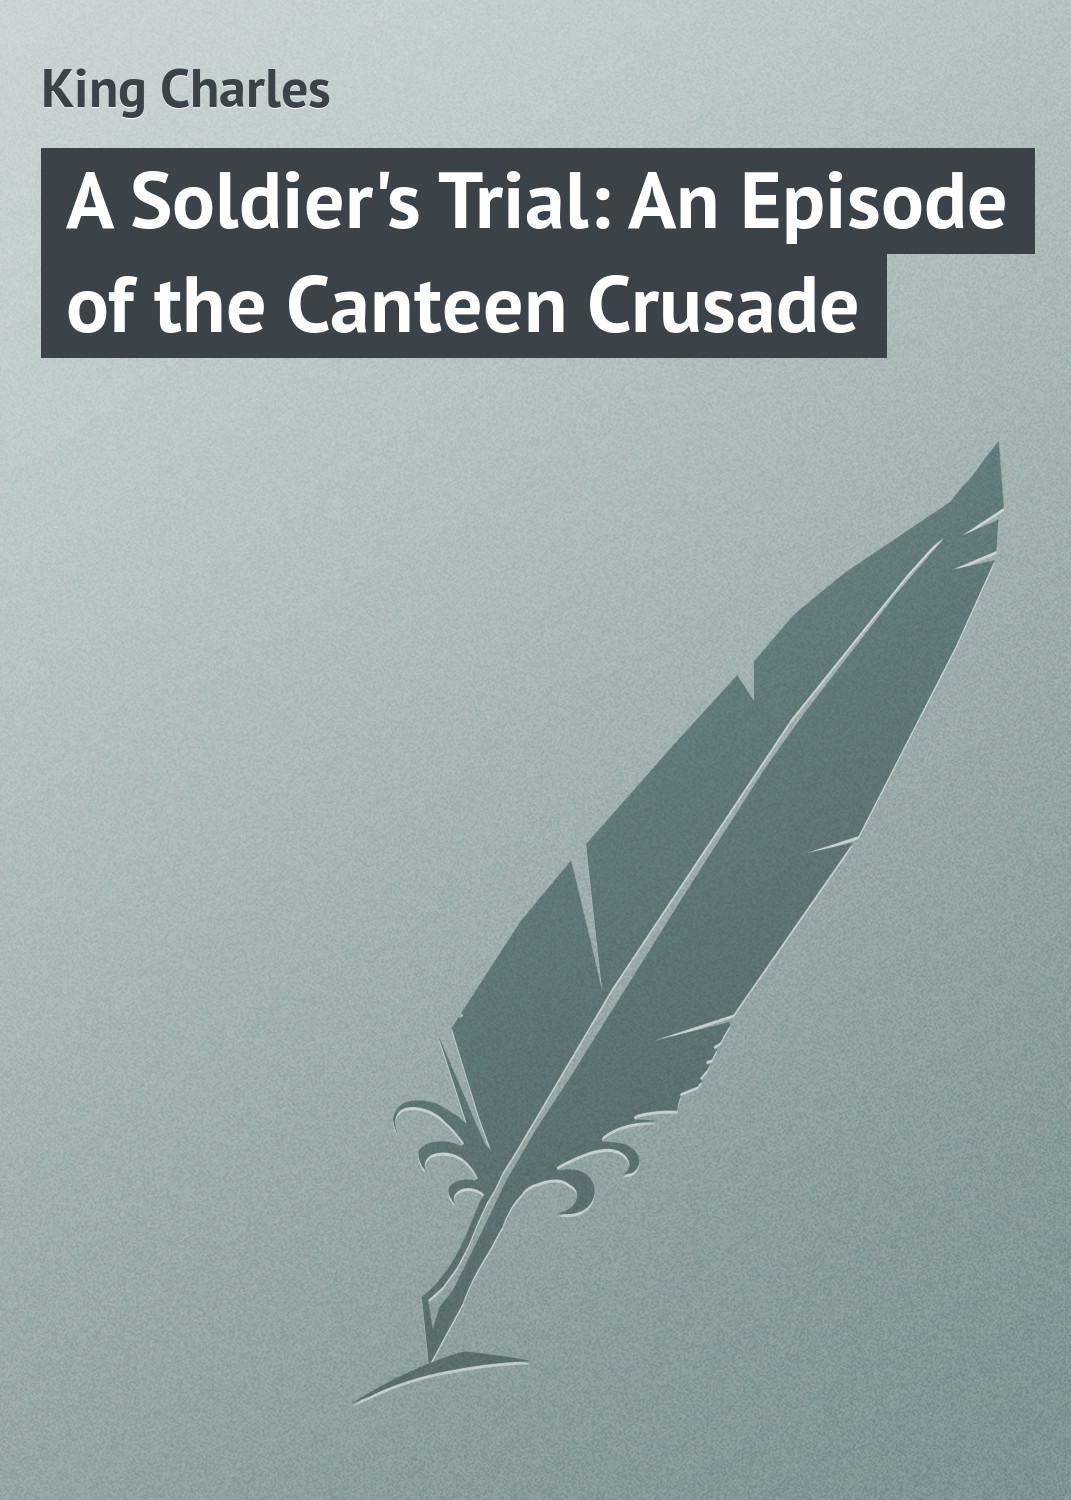 King Charles A Soldier's Trial: An Episode of the Canteen Crusade charles king the general s double